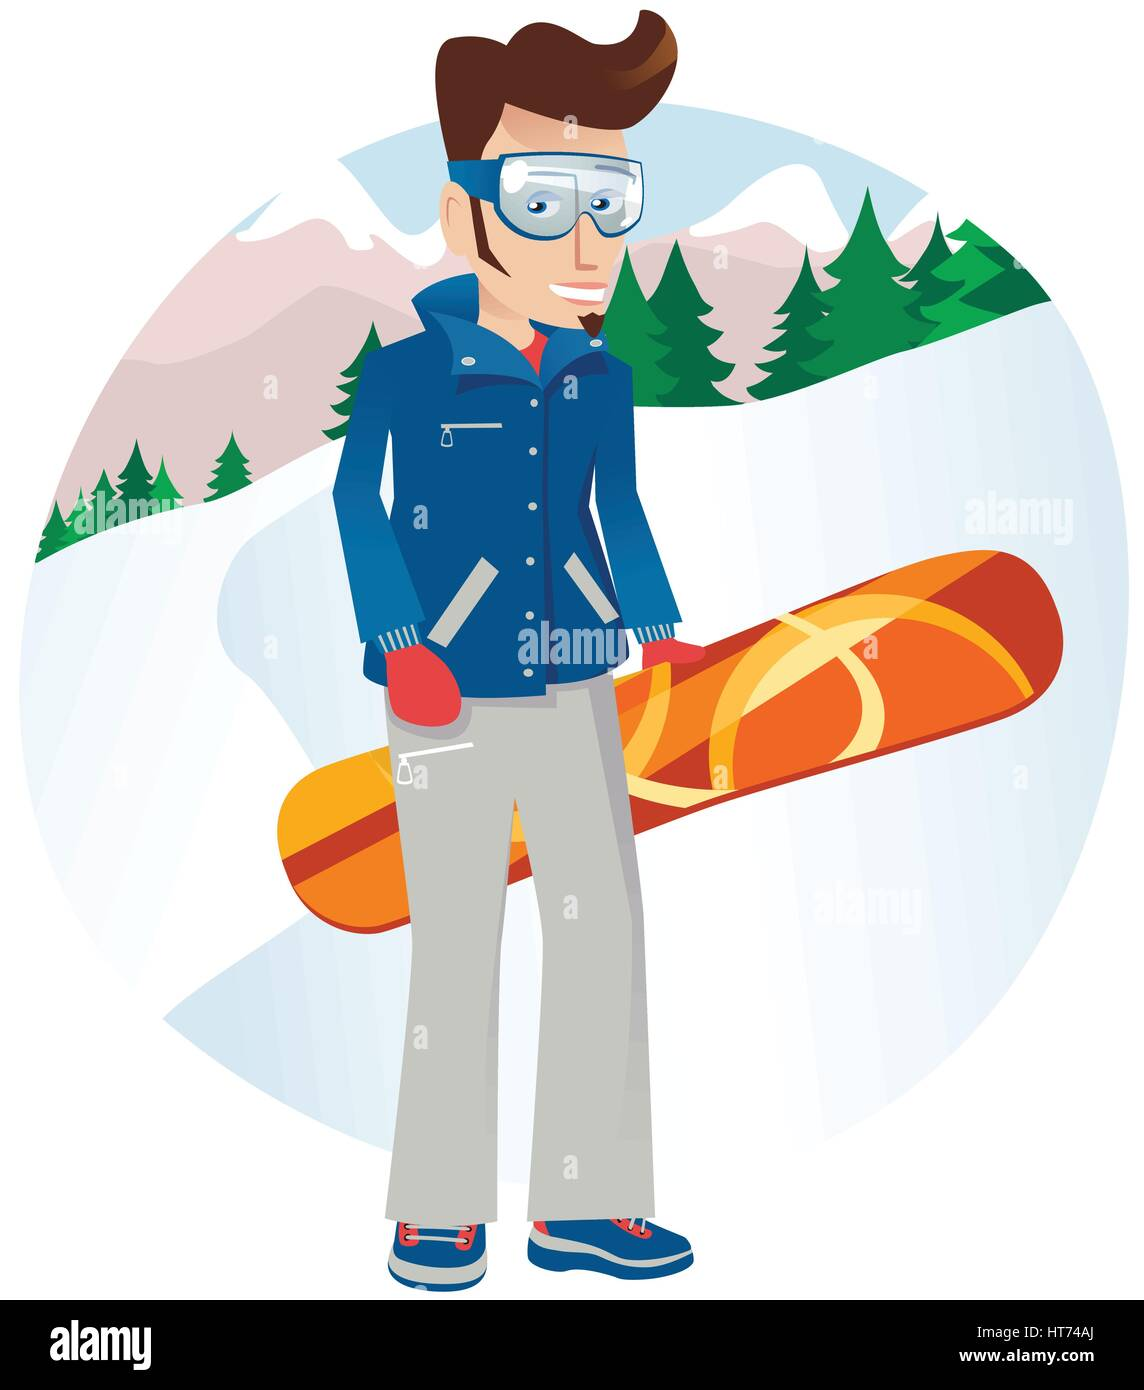 An image of a young male snowboarder posing on the mountainside. - Stock Vector